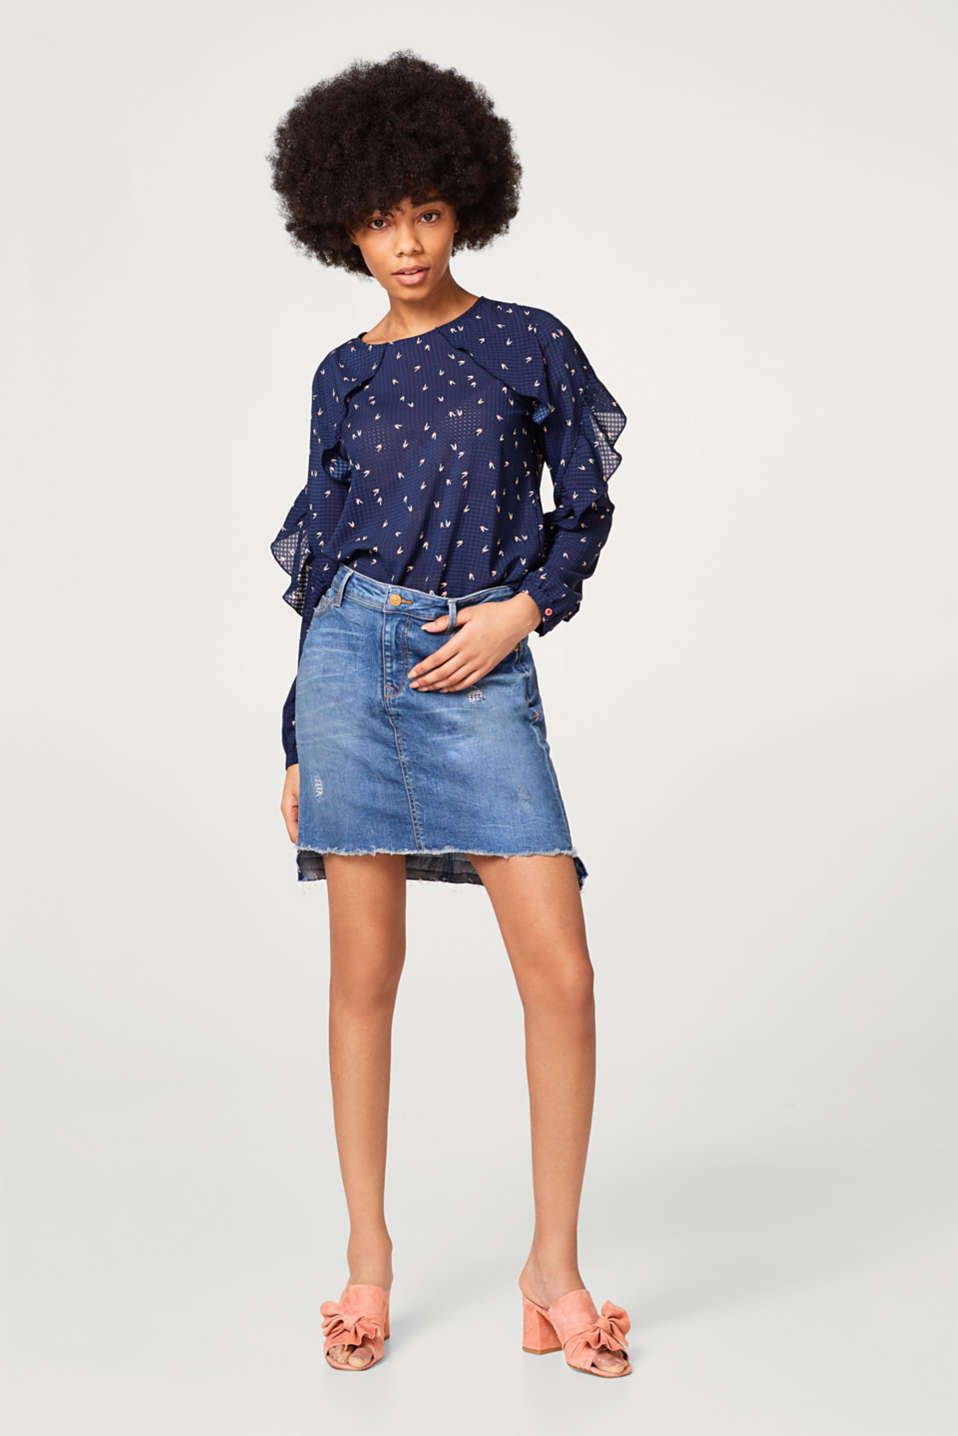 Blouse with frills and a graphic print